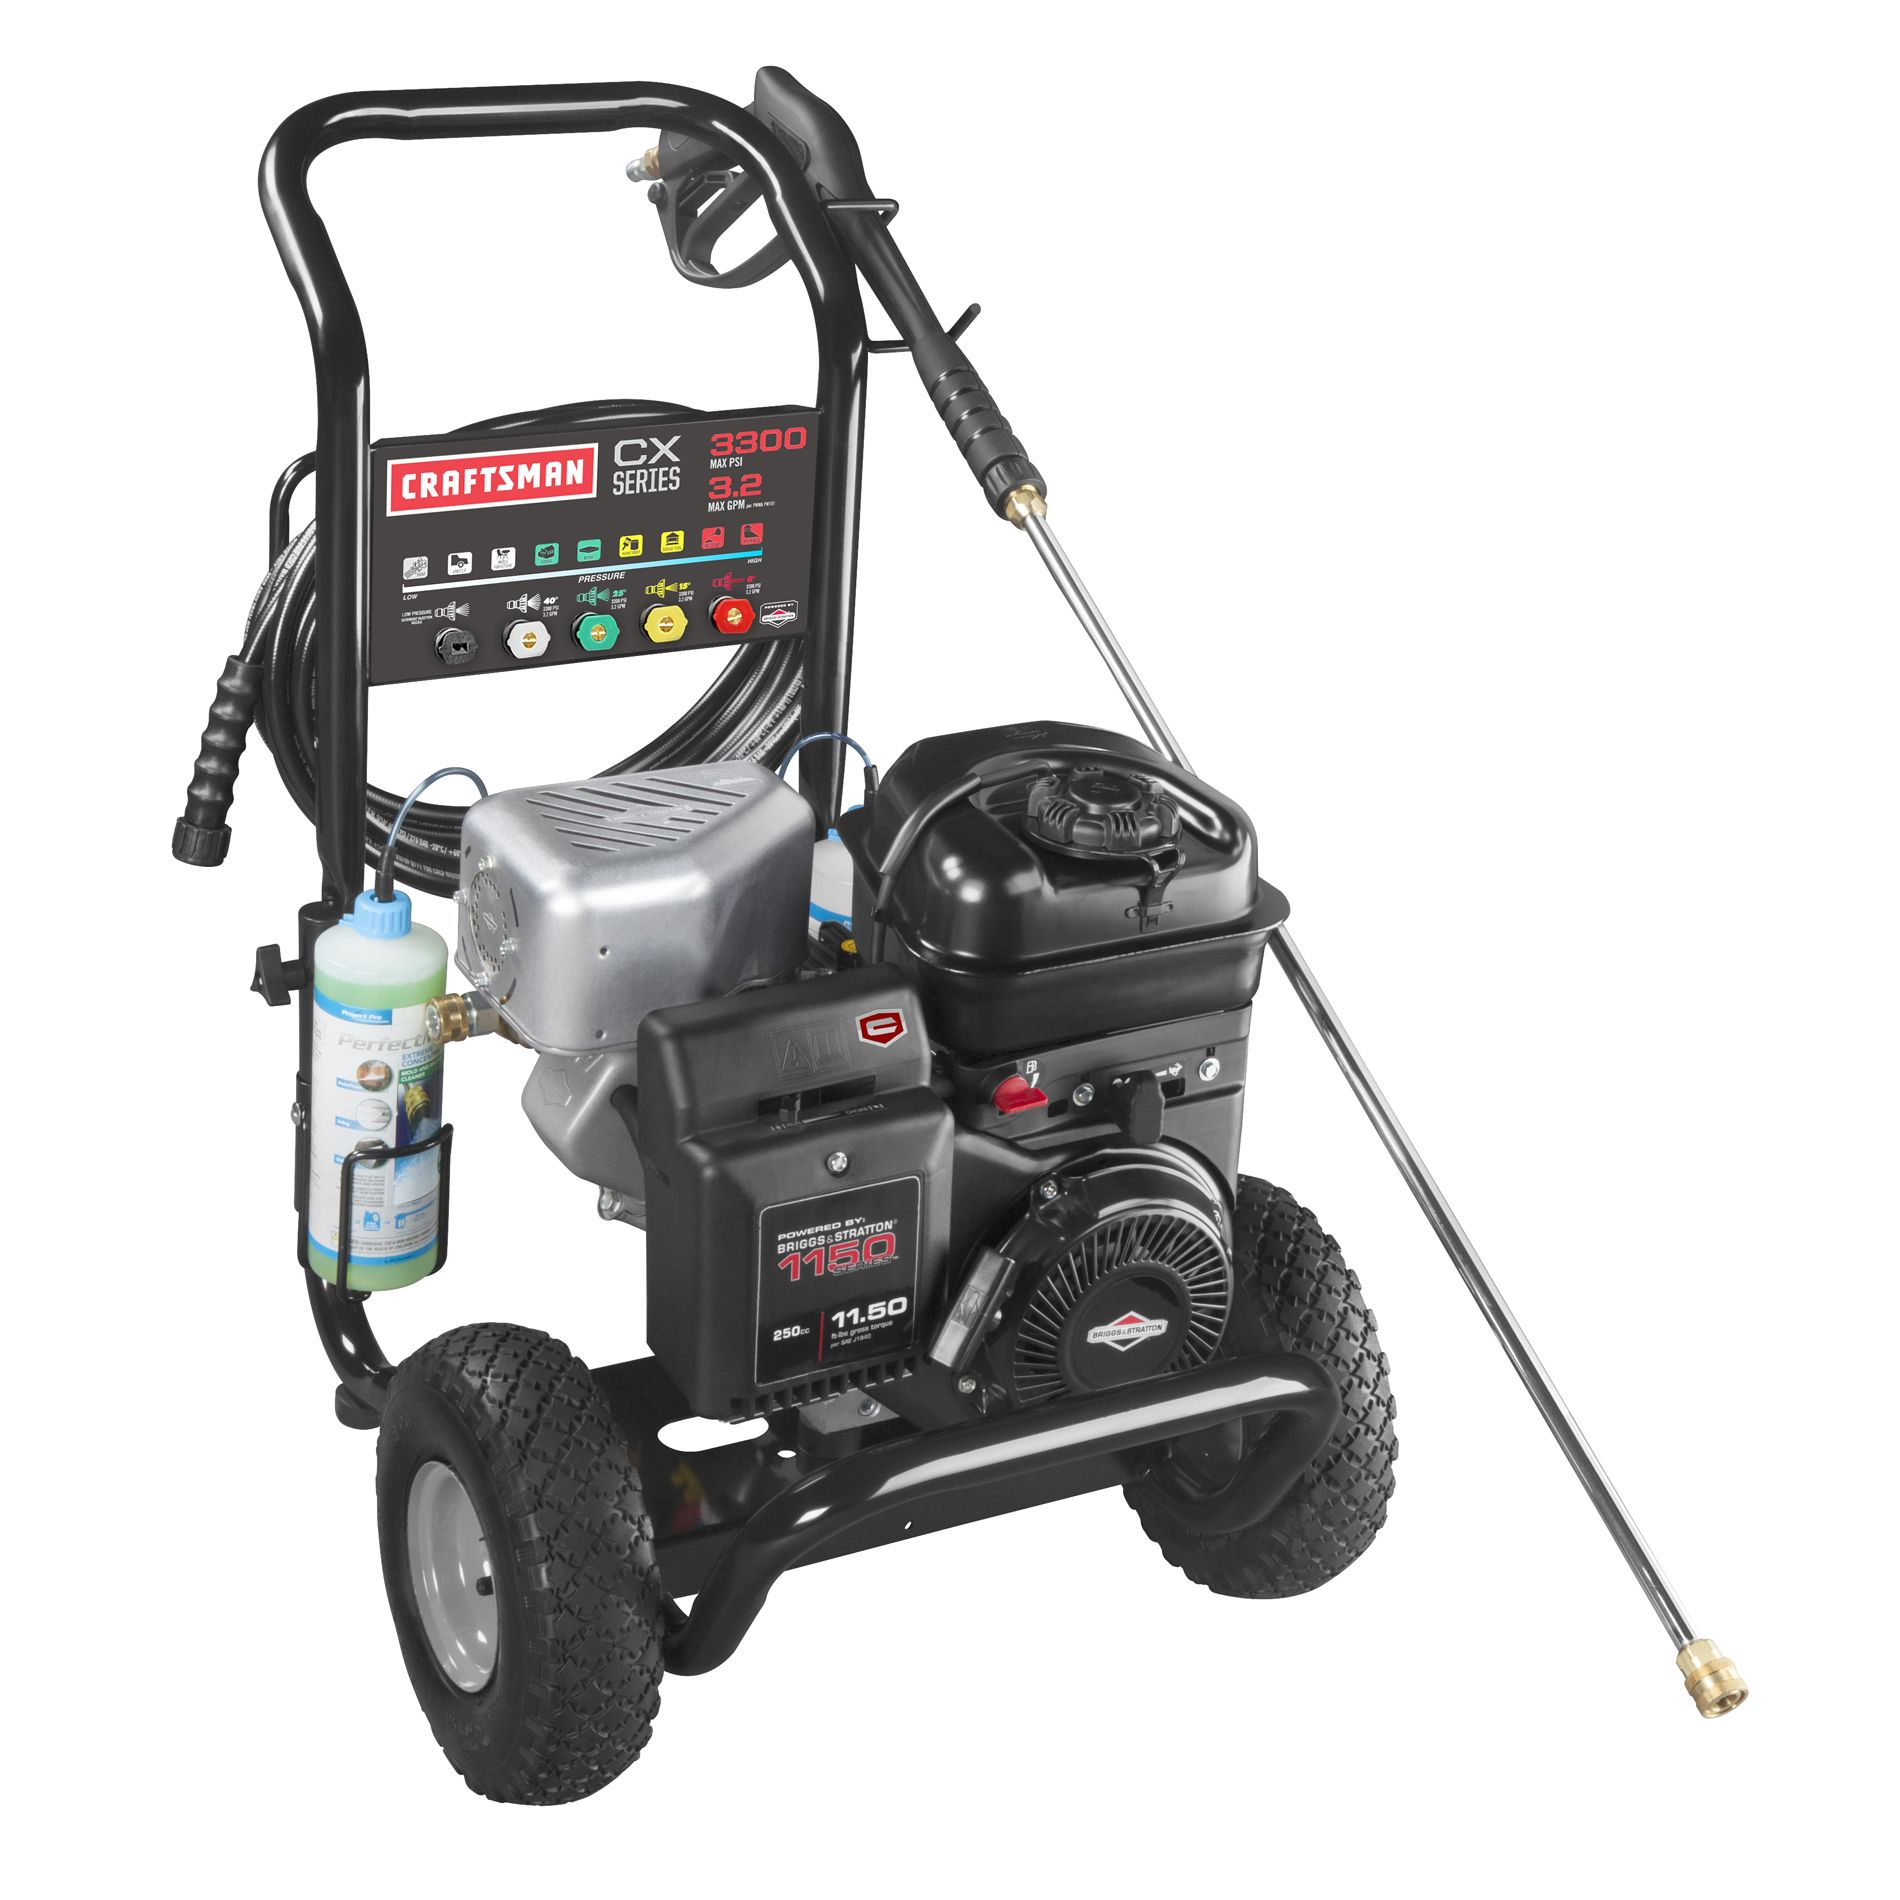 Craftsman CX Series Pressure Washer 3,300 PSI 3.2 GPM Briggs & Stratton Powered - 50 State